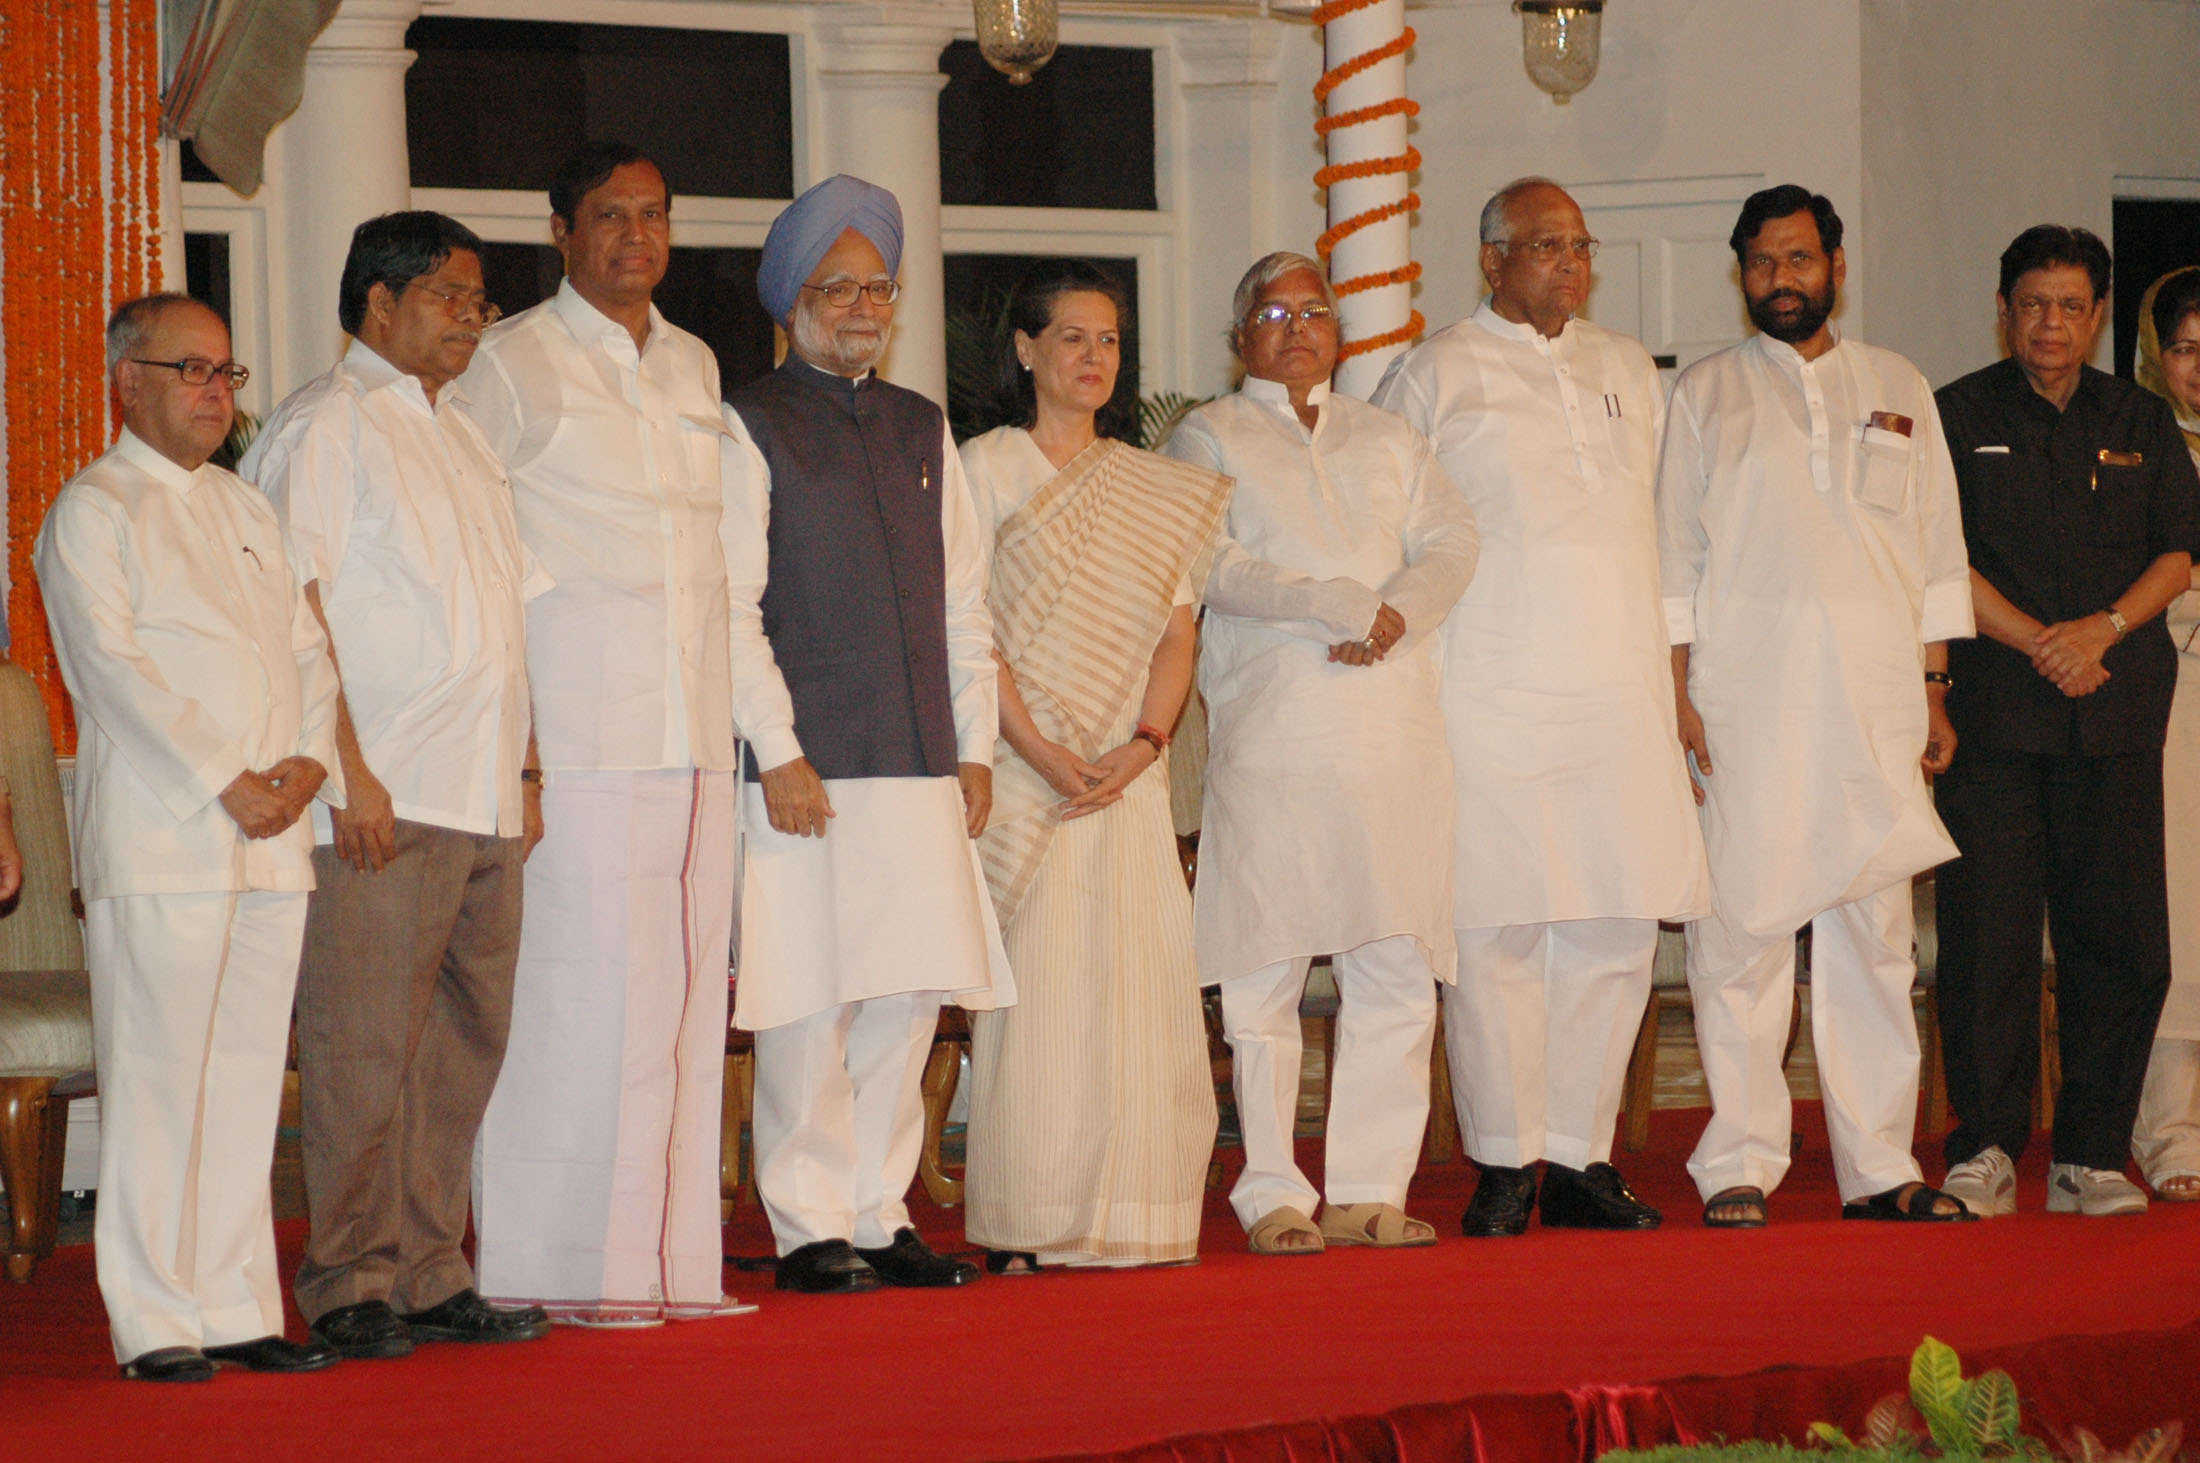 file:the prime minister, dr. manmohan singh, the chairperson, upa, smt. sonia gandhi and other leaders of upa posing for group photograph on the occasion of third anniversary of the upa government, in